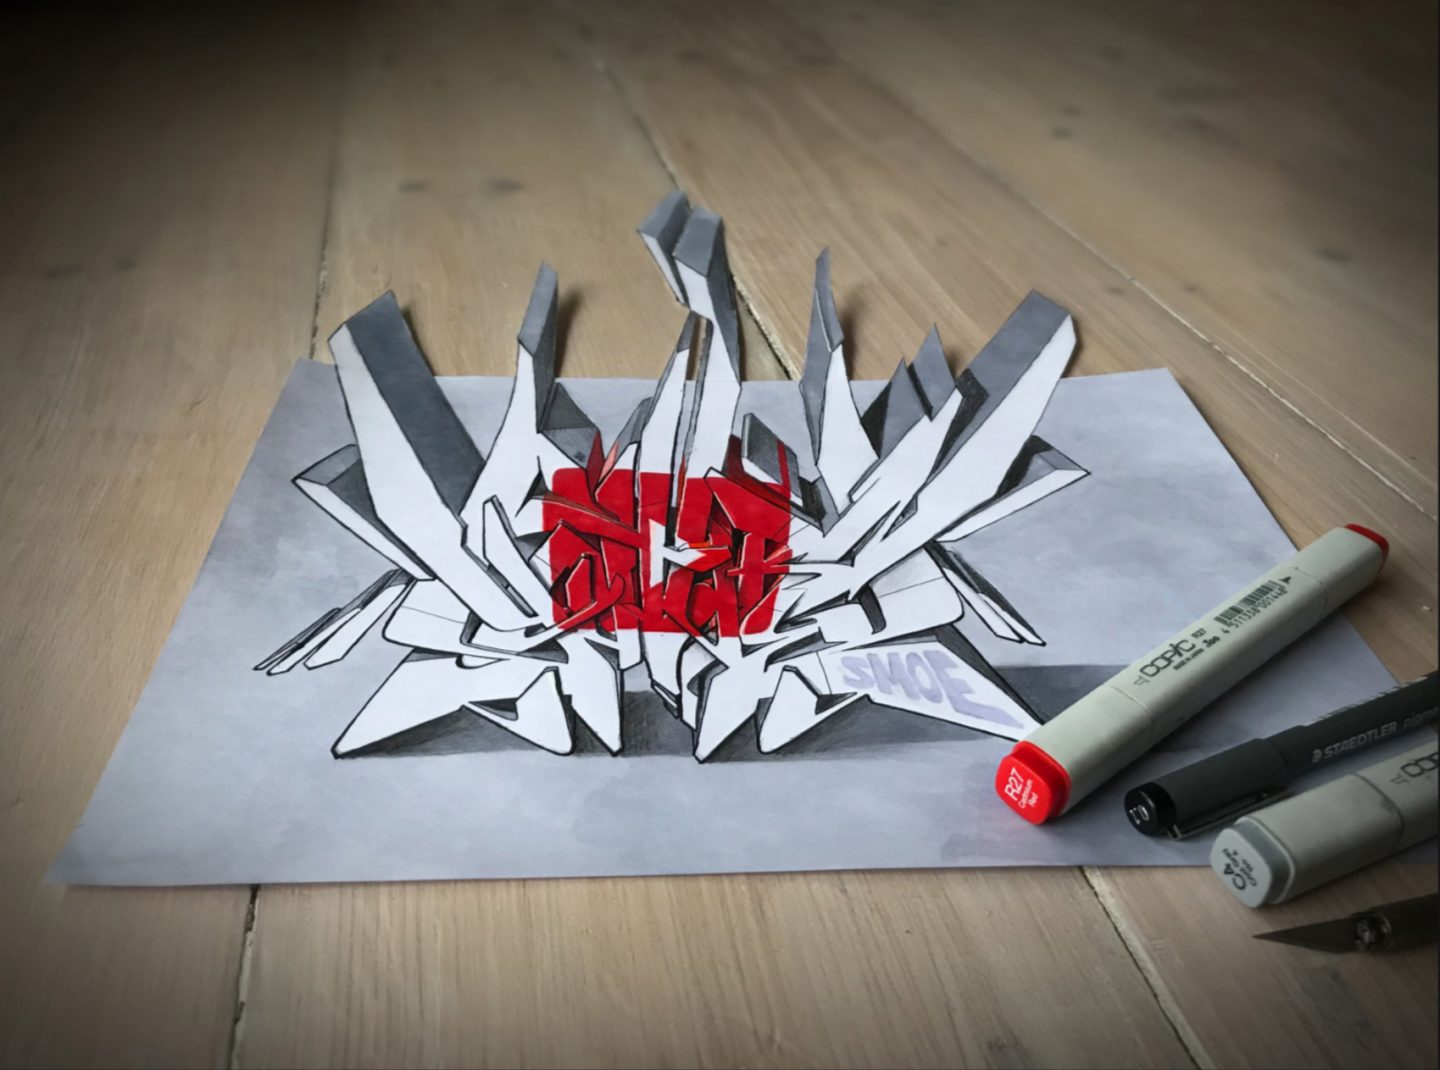 20 Awesome Graffiti Sketches: the Art of Graffiti Sketching